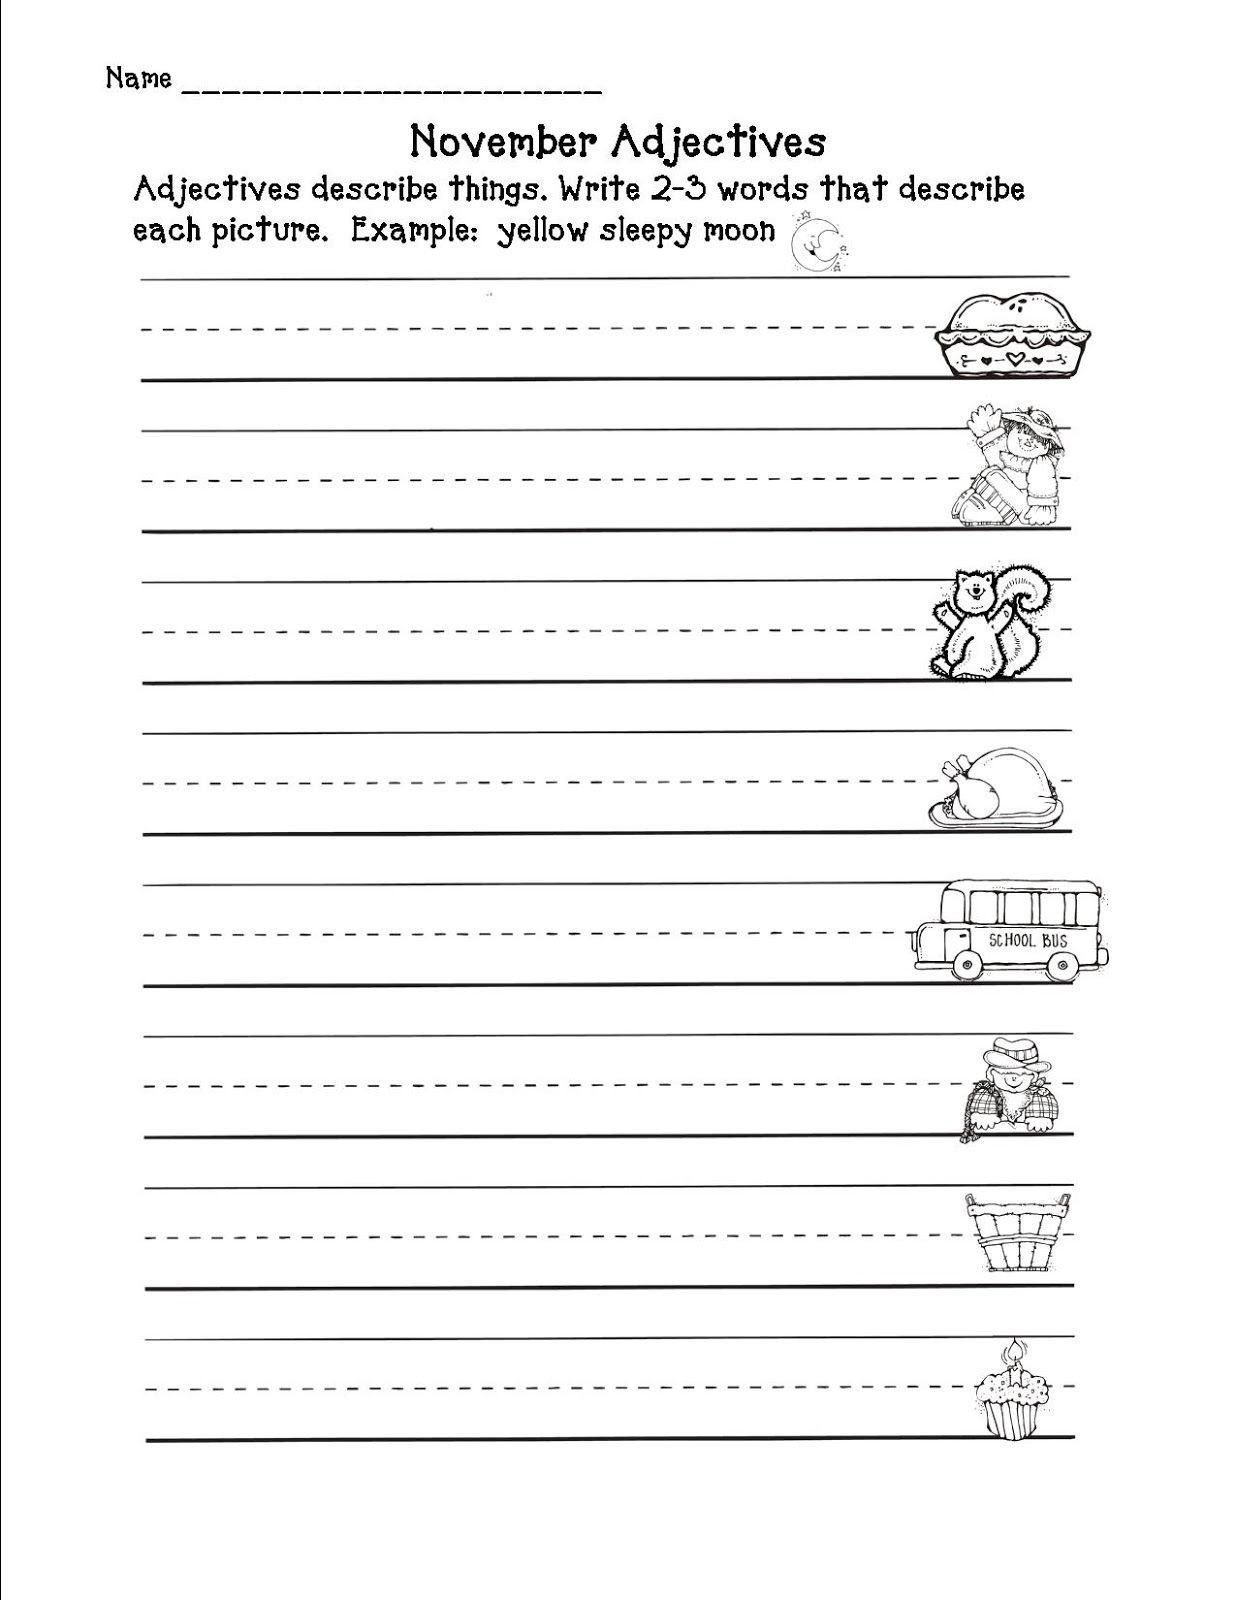 Adjectives Worksheet 2nd Grade 2nd In Line November 2012